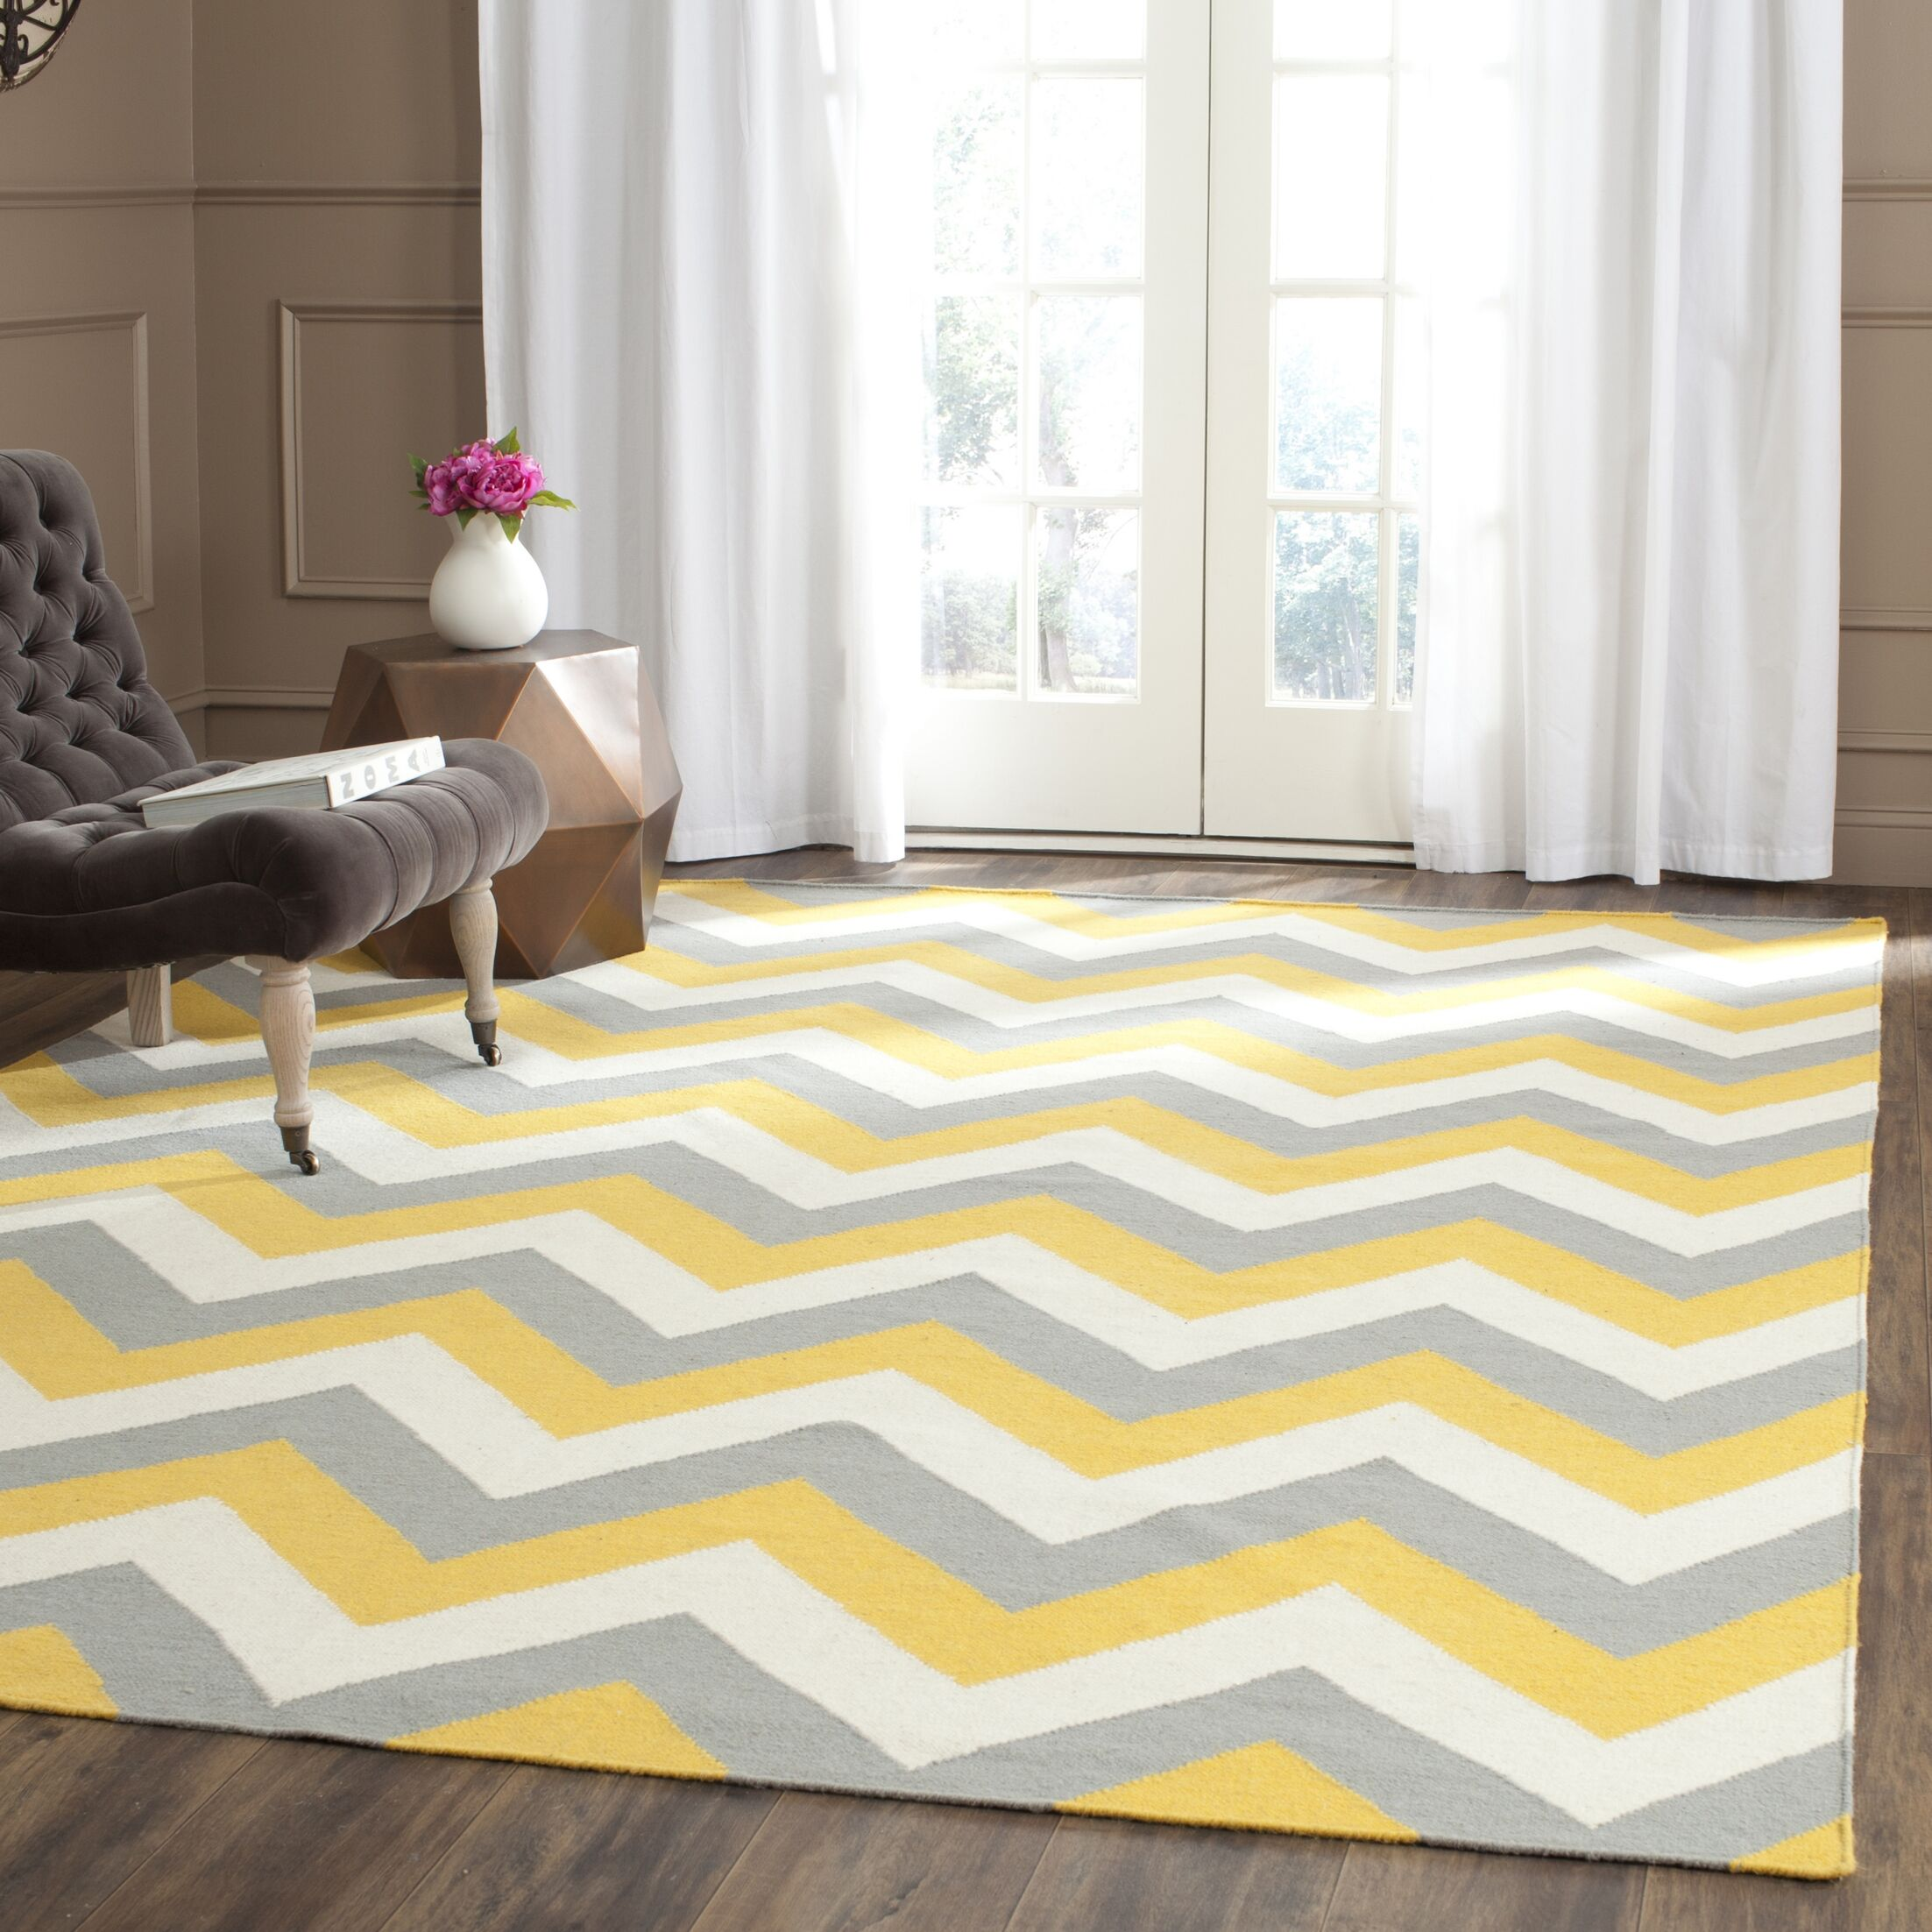 Dhurries Hand-Woven Cotton Chevron Area Rug Rug Size: Rectangle 6' x 9'